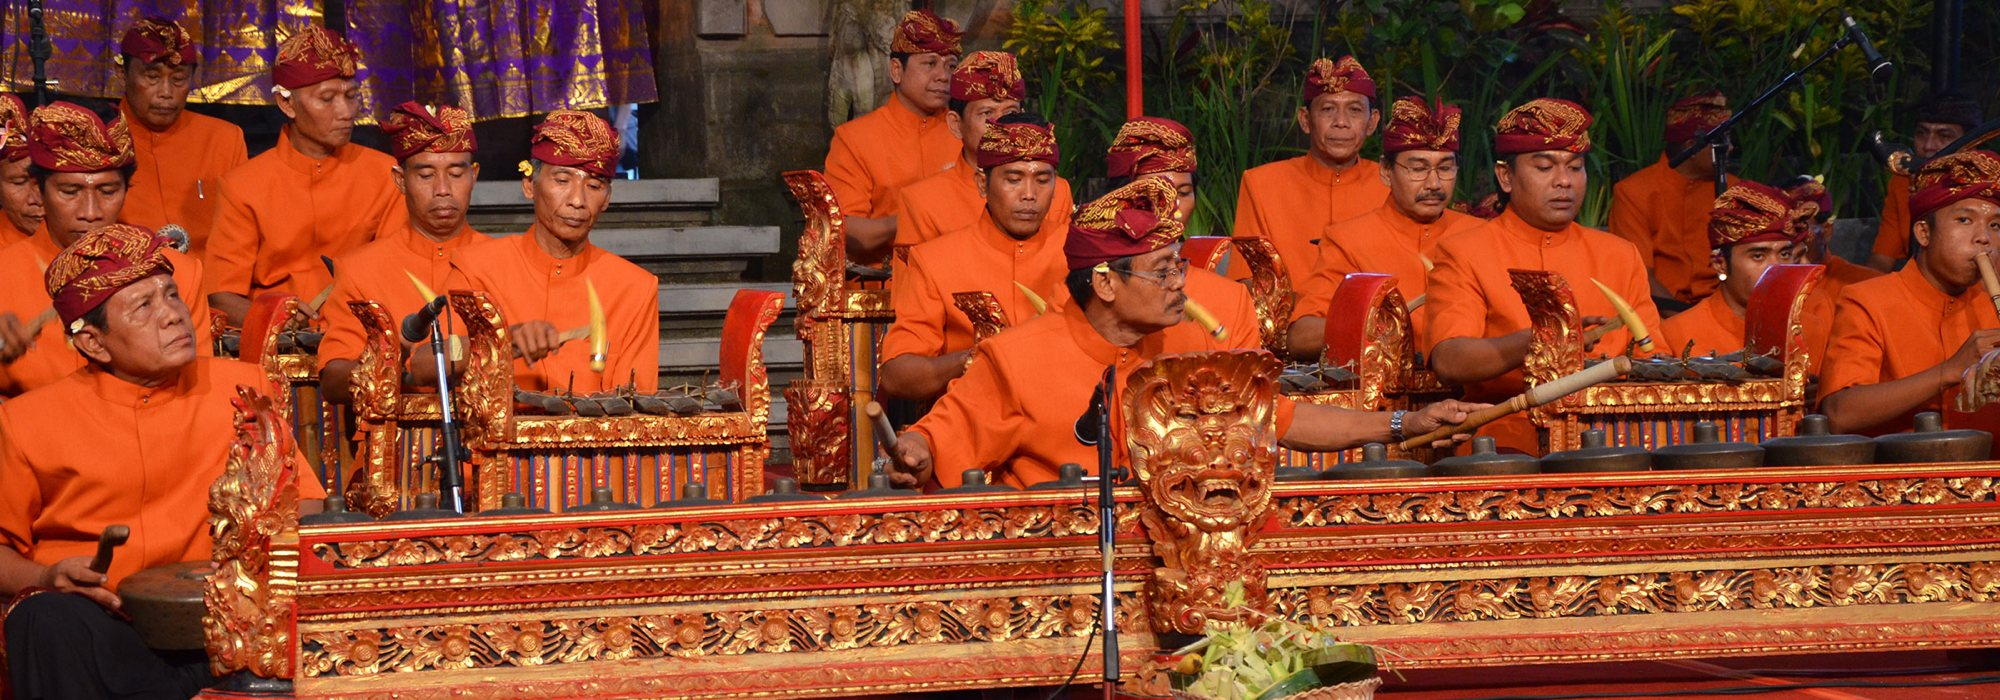 A dozen or so gamelan players wearing bright orange.